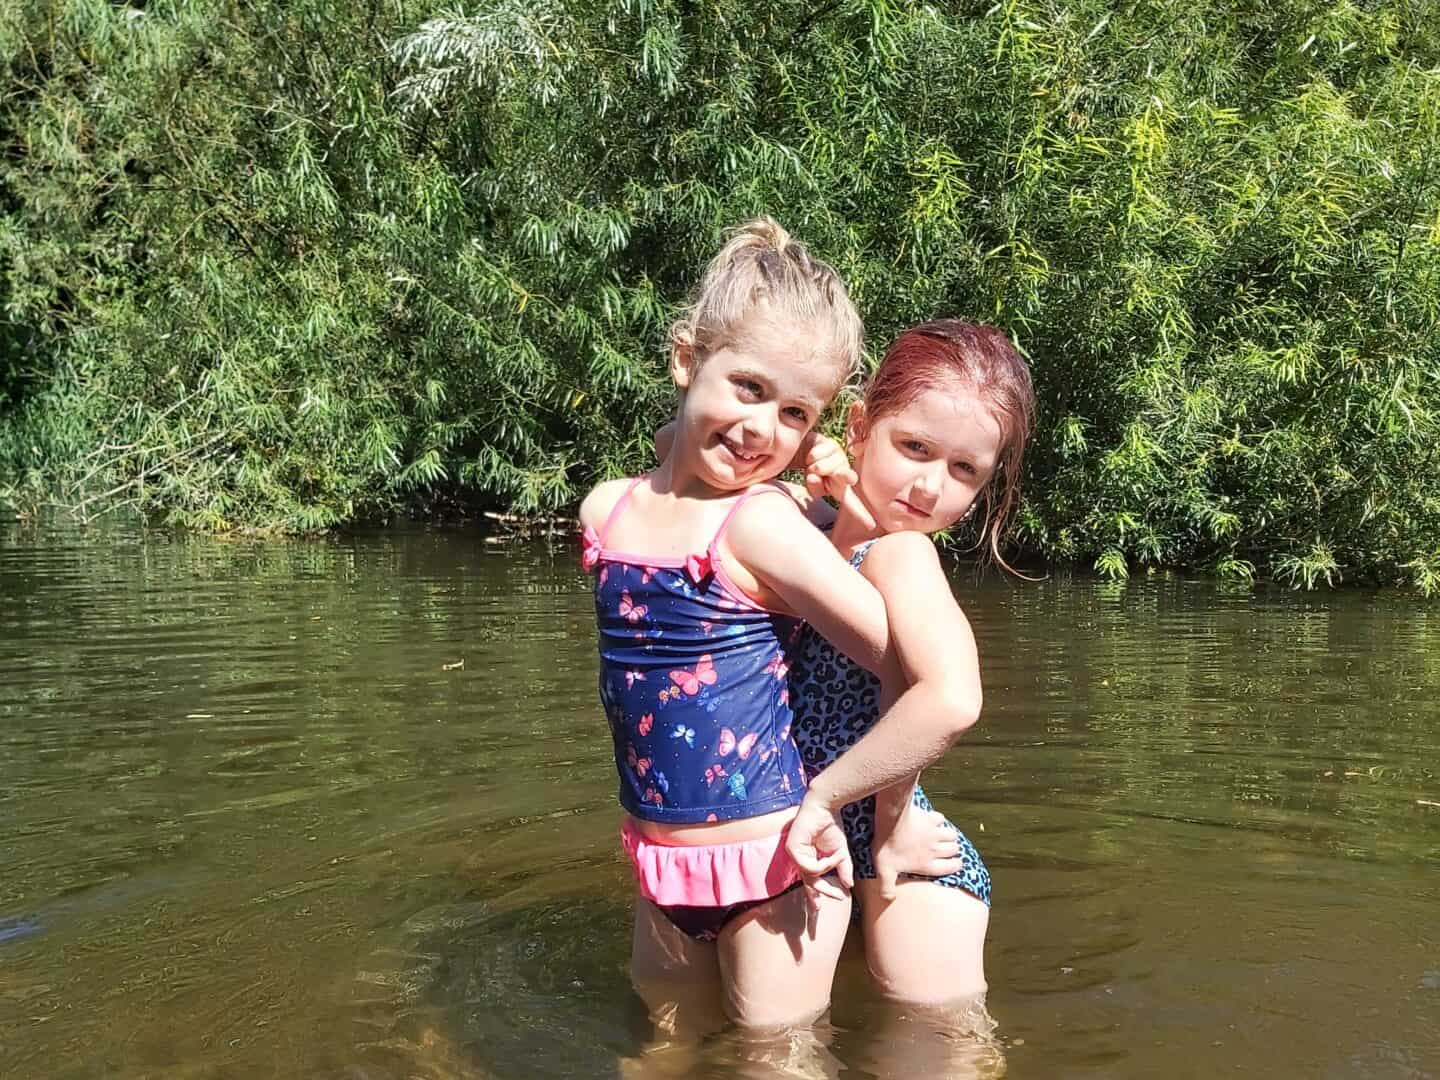 Two girls in swimming costumes standing in a river with a willow tree behind